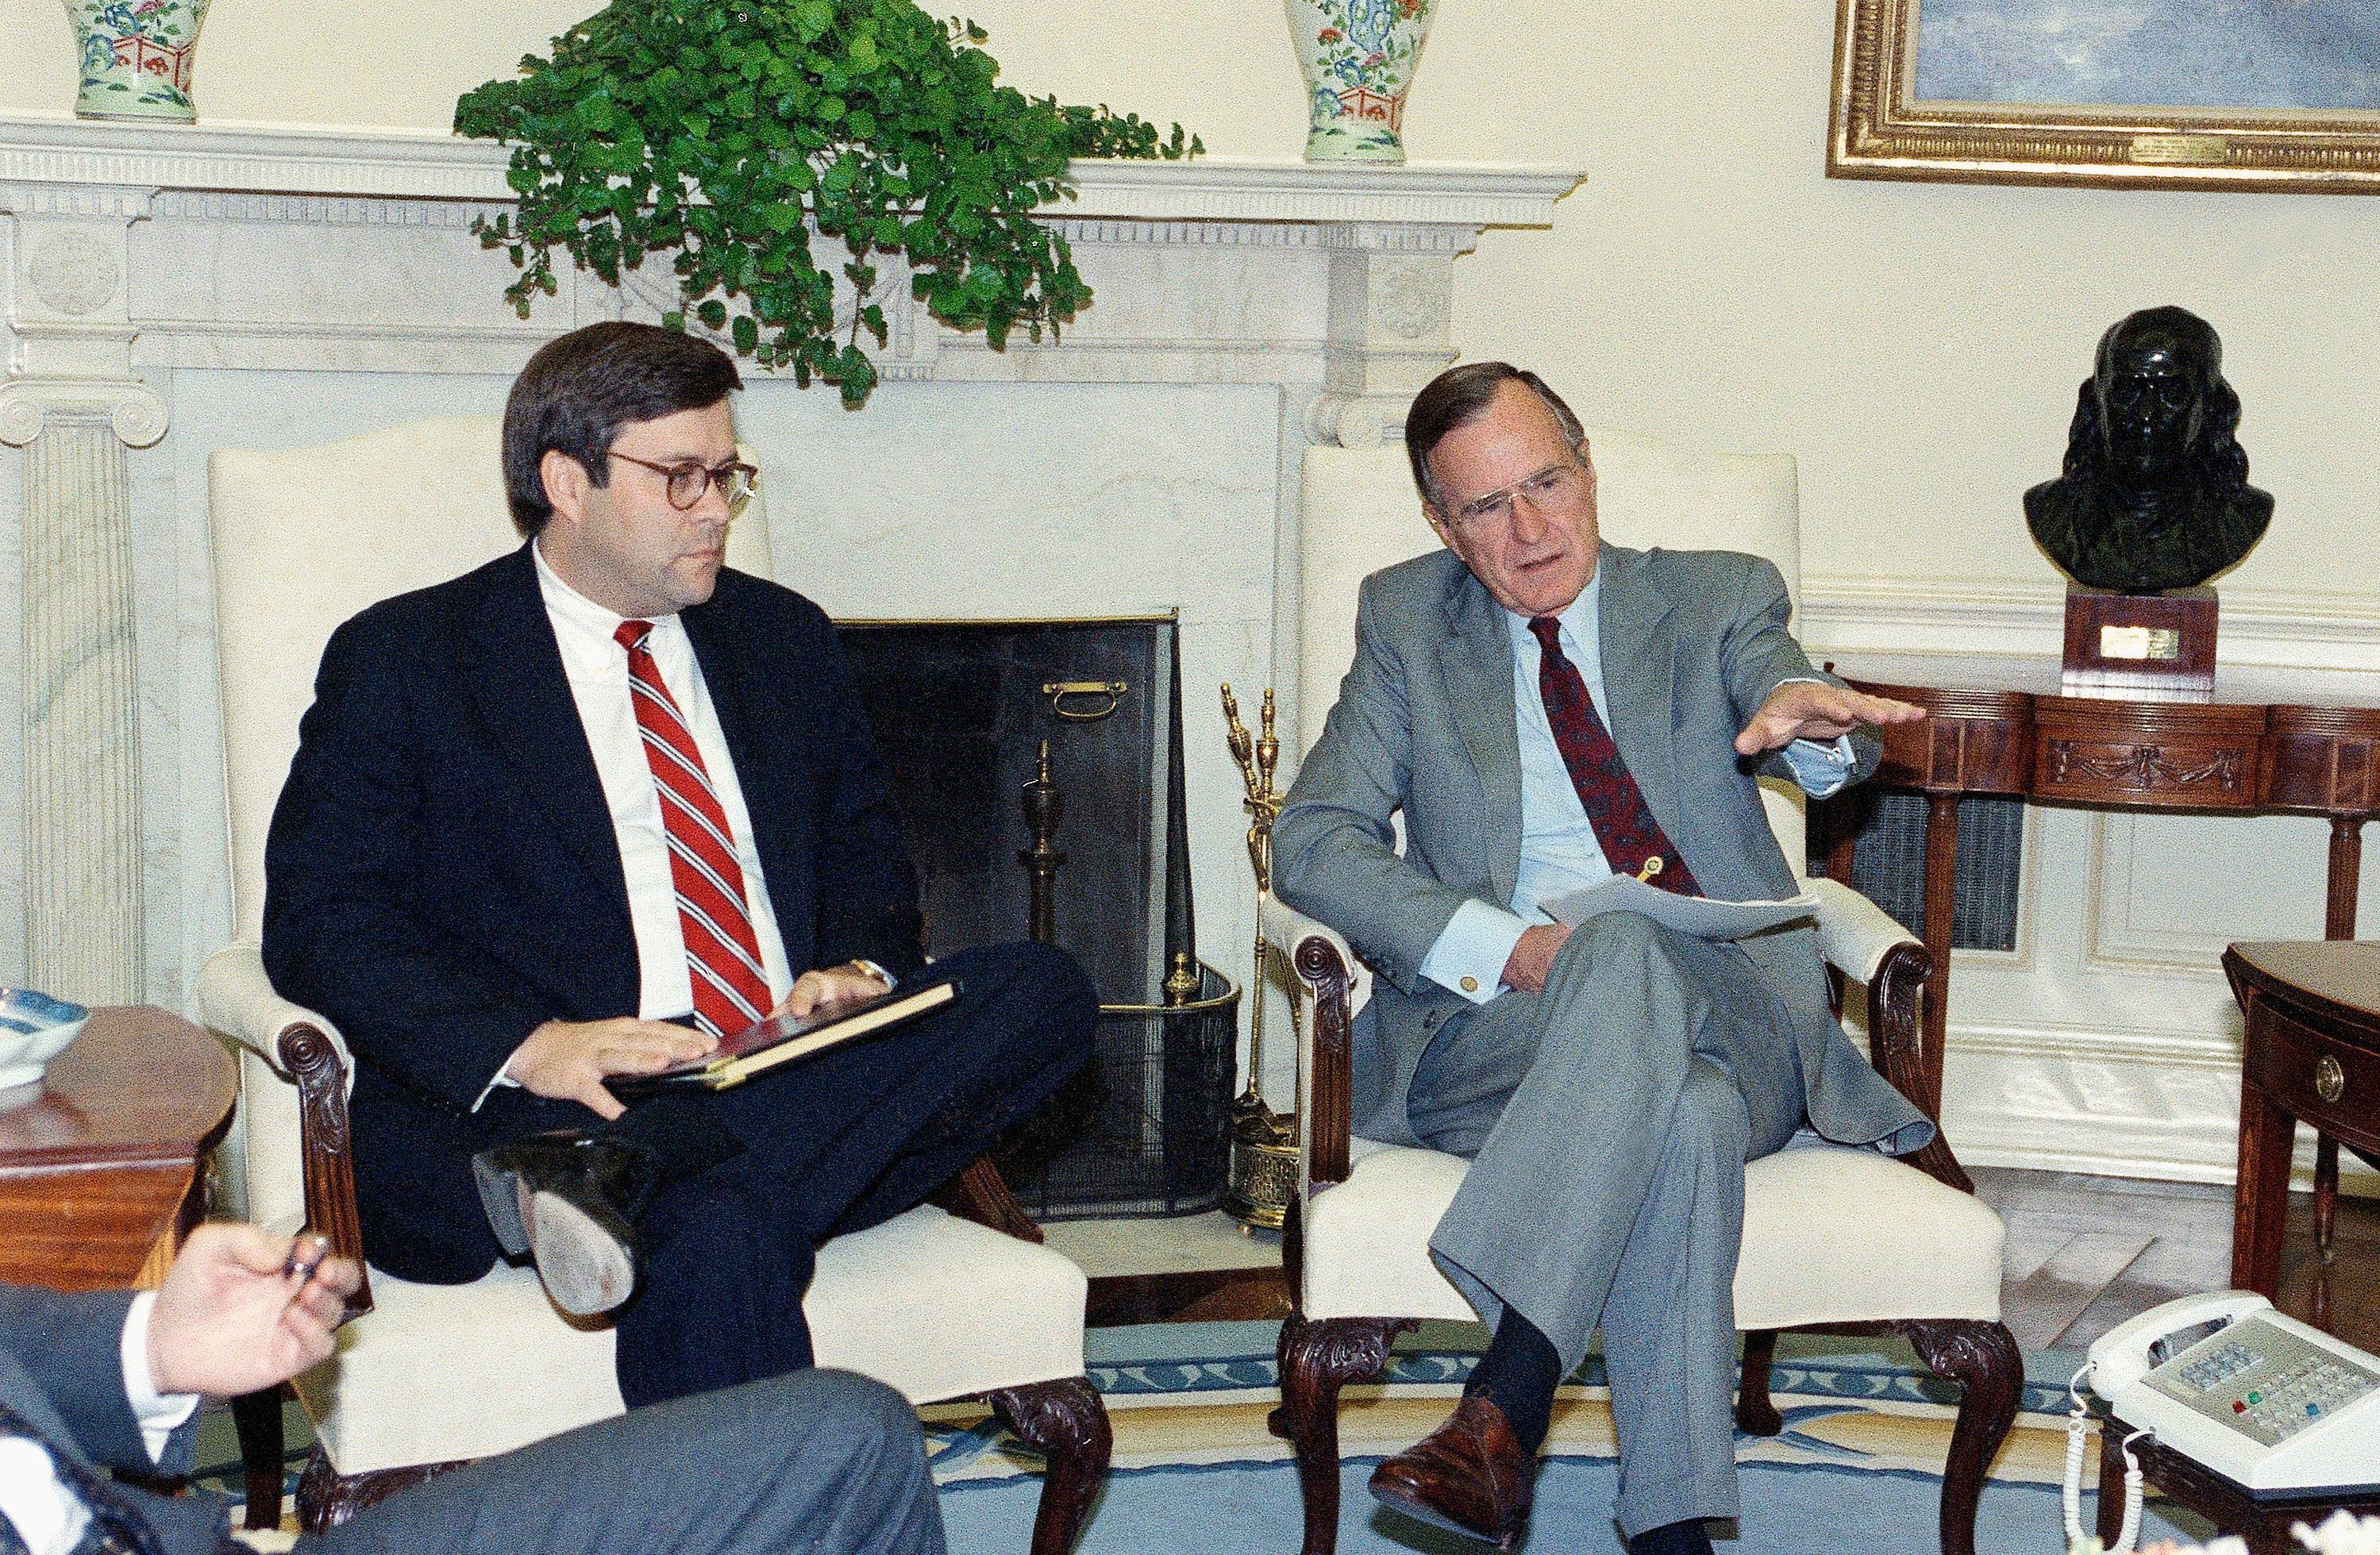 William Barr, left, is seen in 1992 with President George H.W. Bush when Barr was serving as U.S. attorney